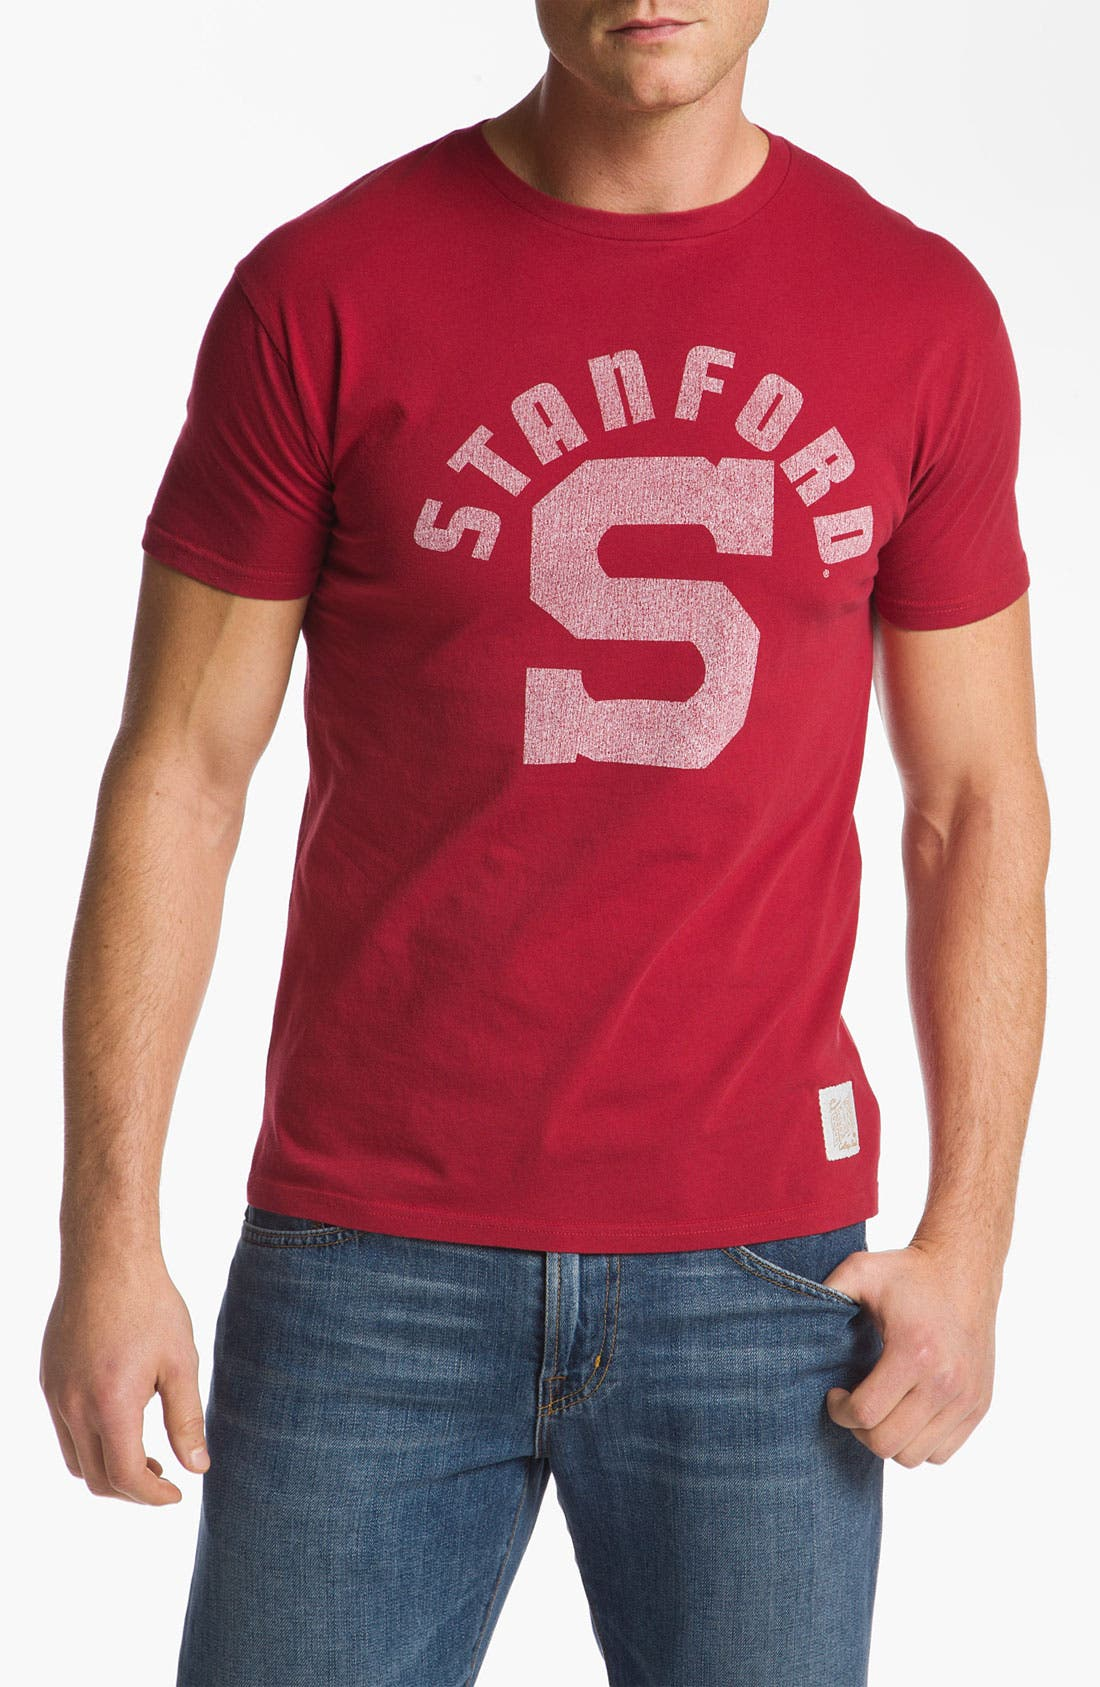 Alternate Image 1 Selected - The Original Retro Brand 'Stanford Cardinal' T-Shirt